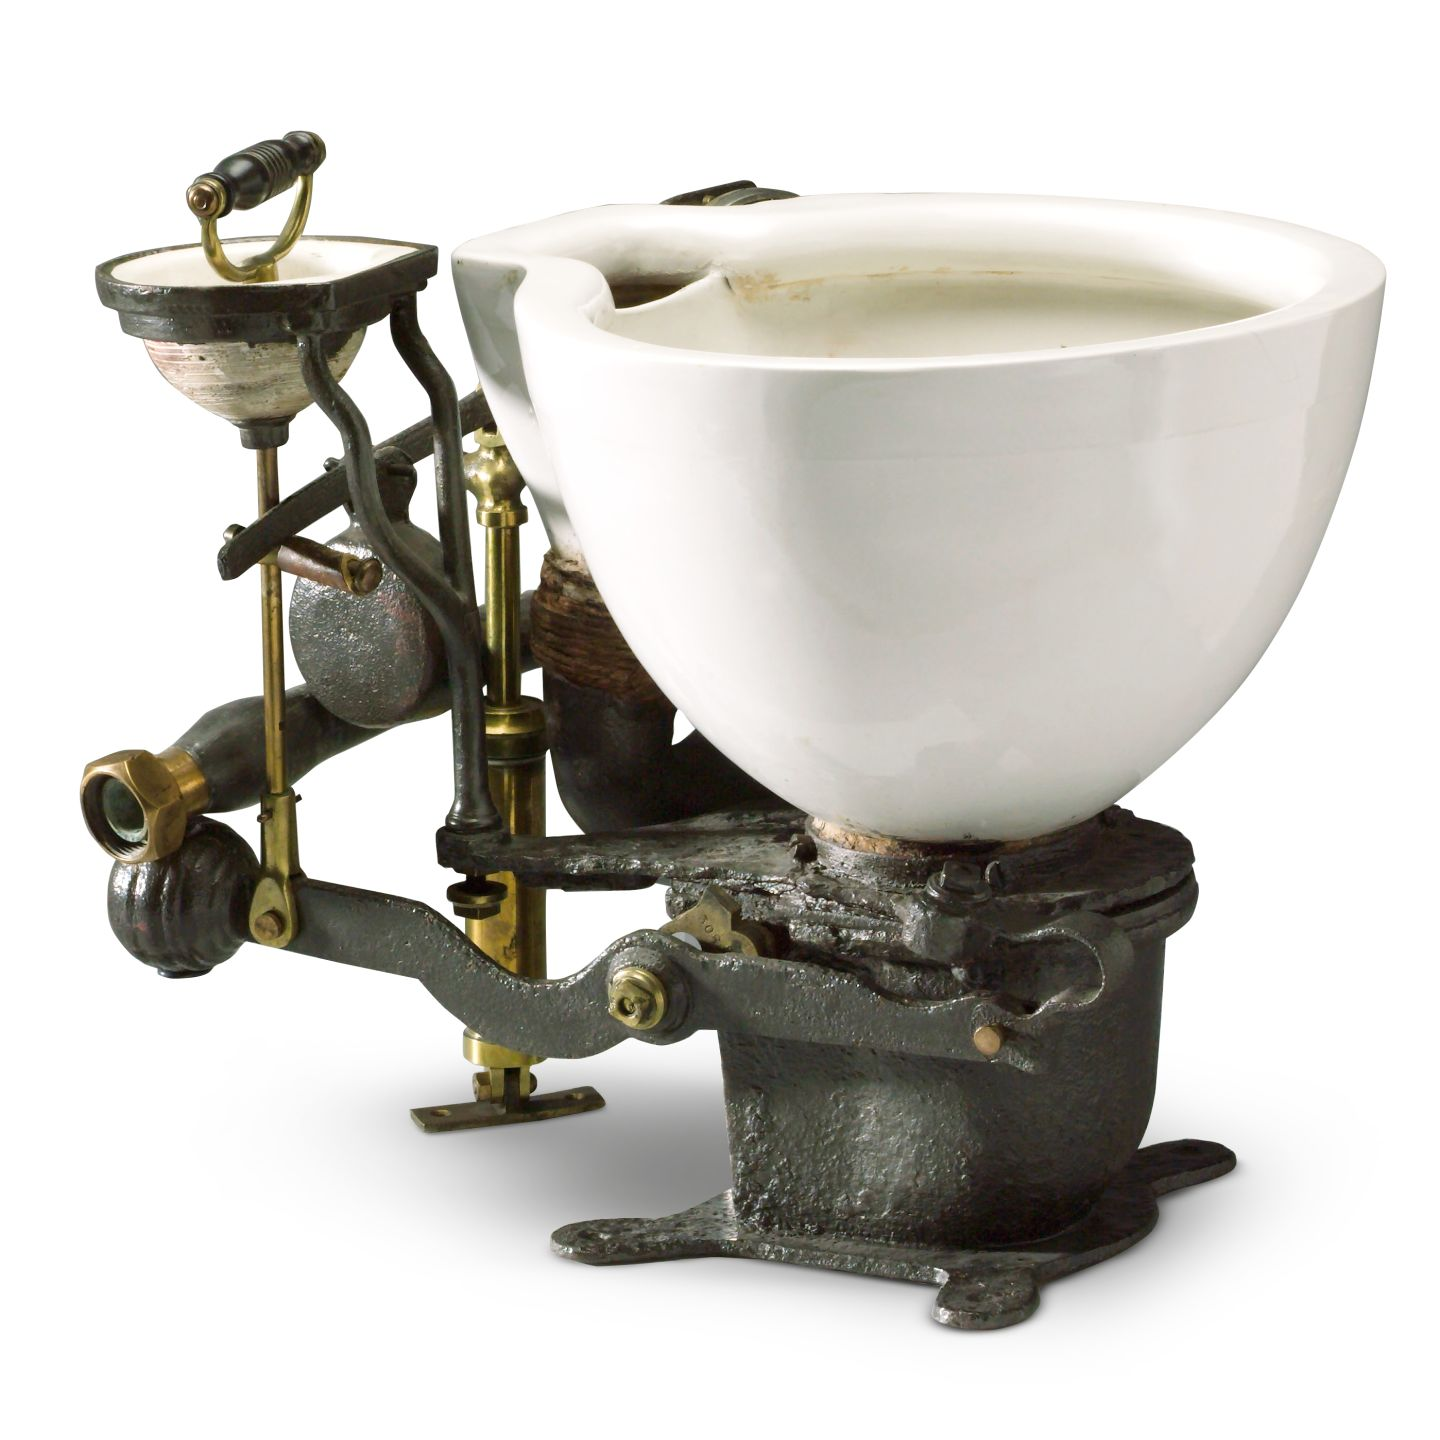 The Ajax - the first flushing toilet; invented by John Harrington.